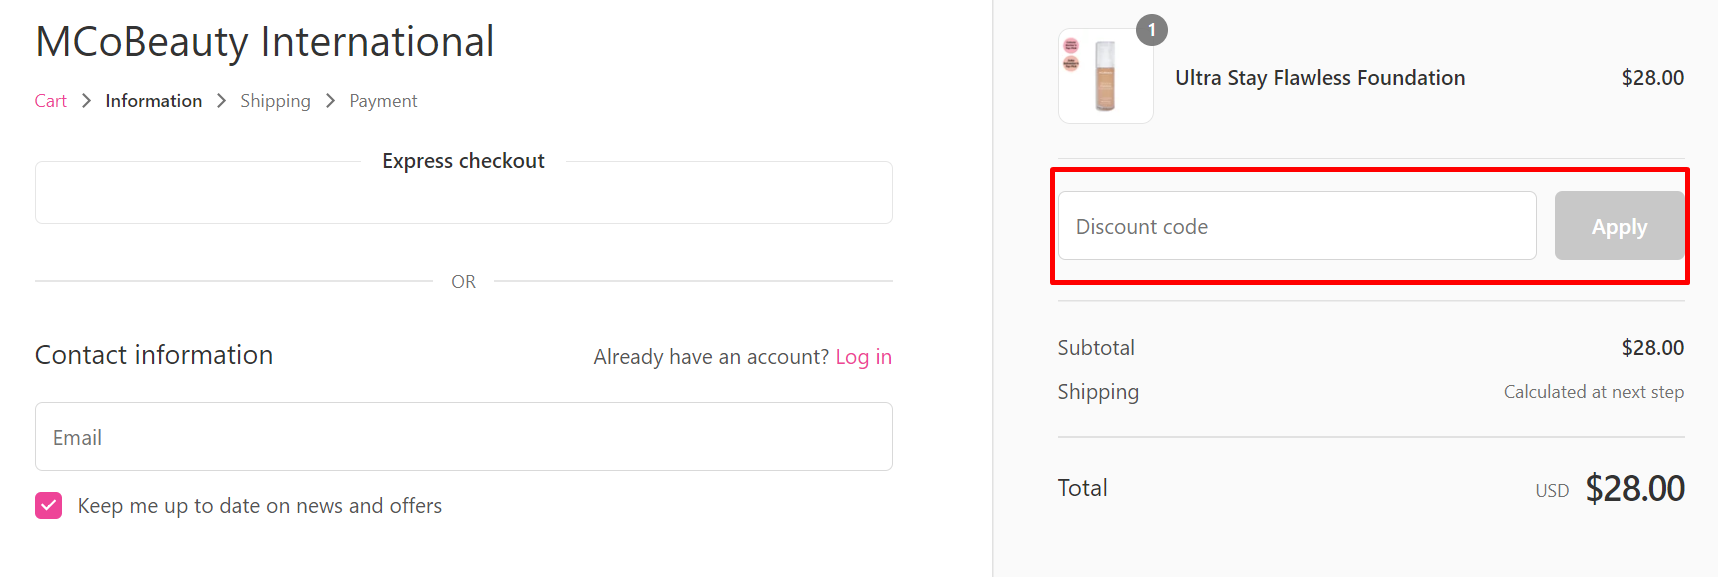 How do I use my MCoBeauty discount code?